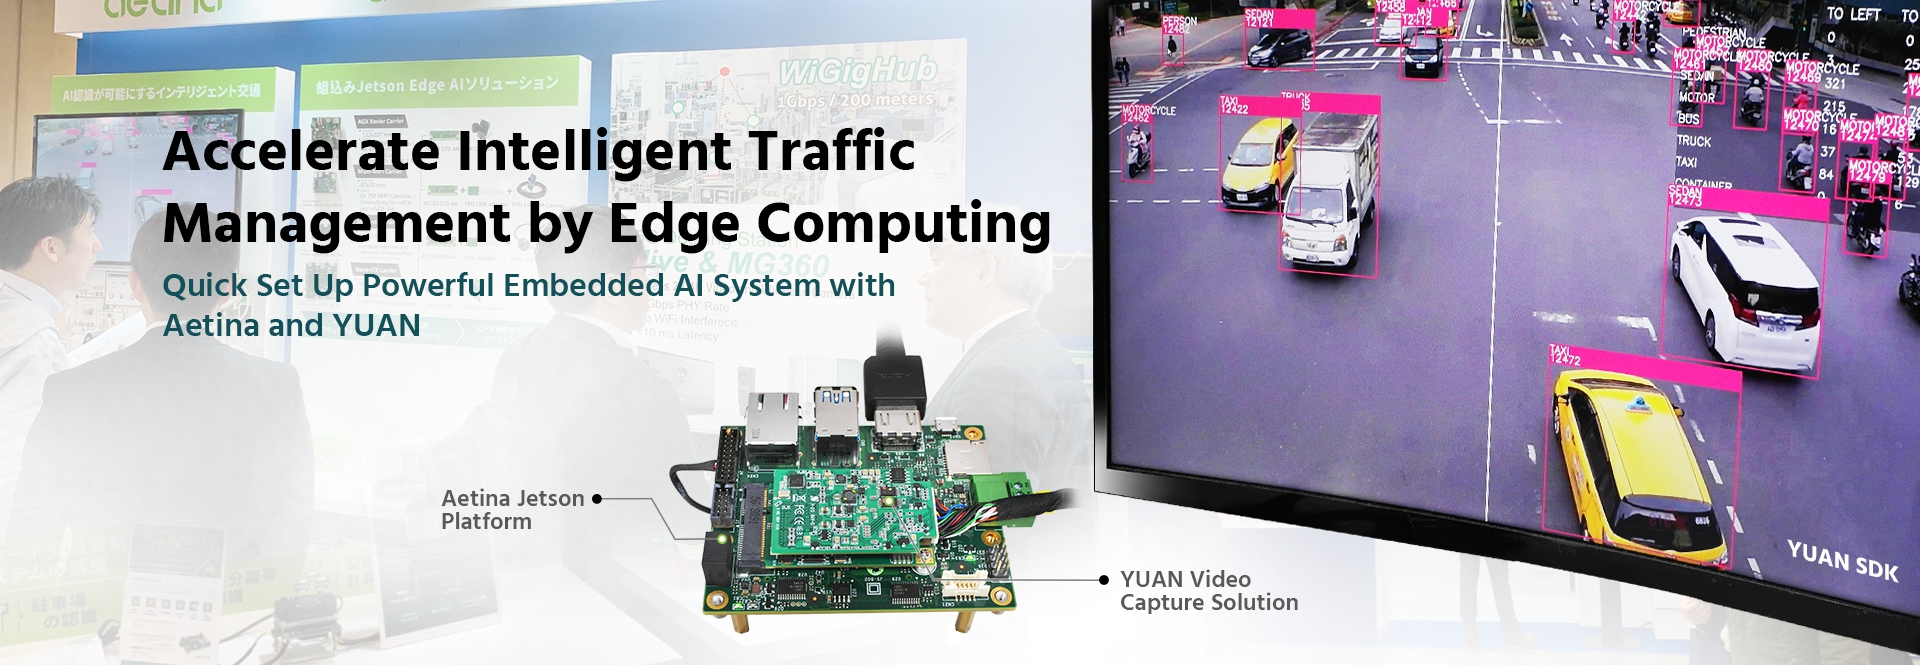 Quick Set Up Embedded AI System Accelerating Intelligent Traffic Management